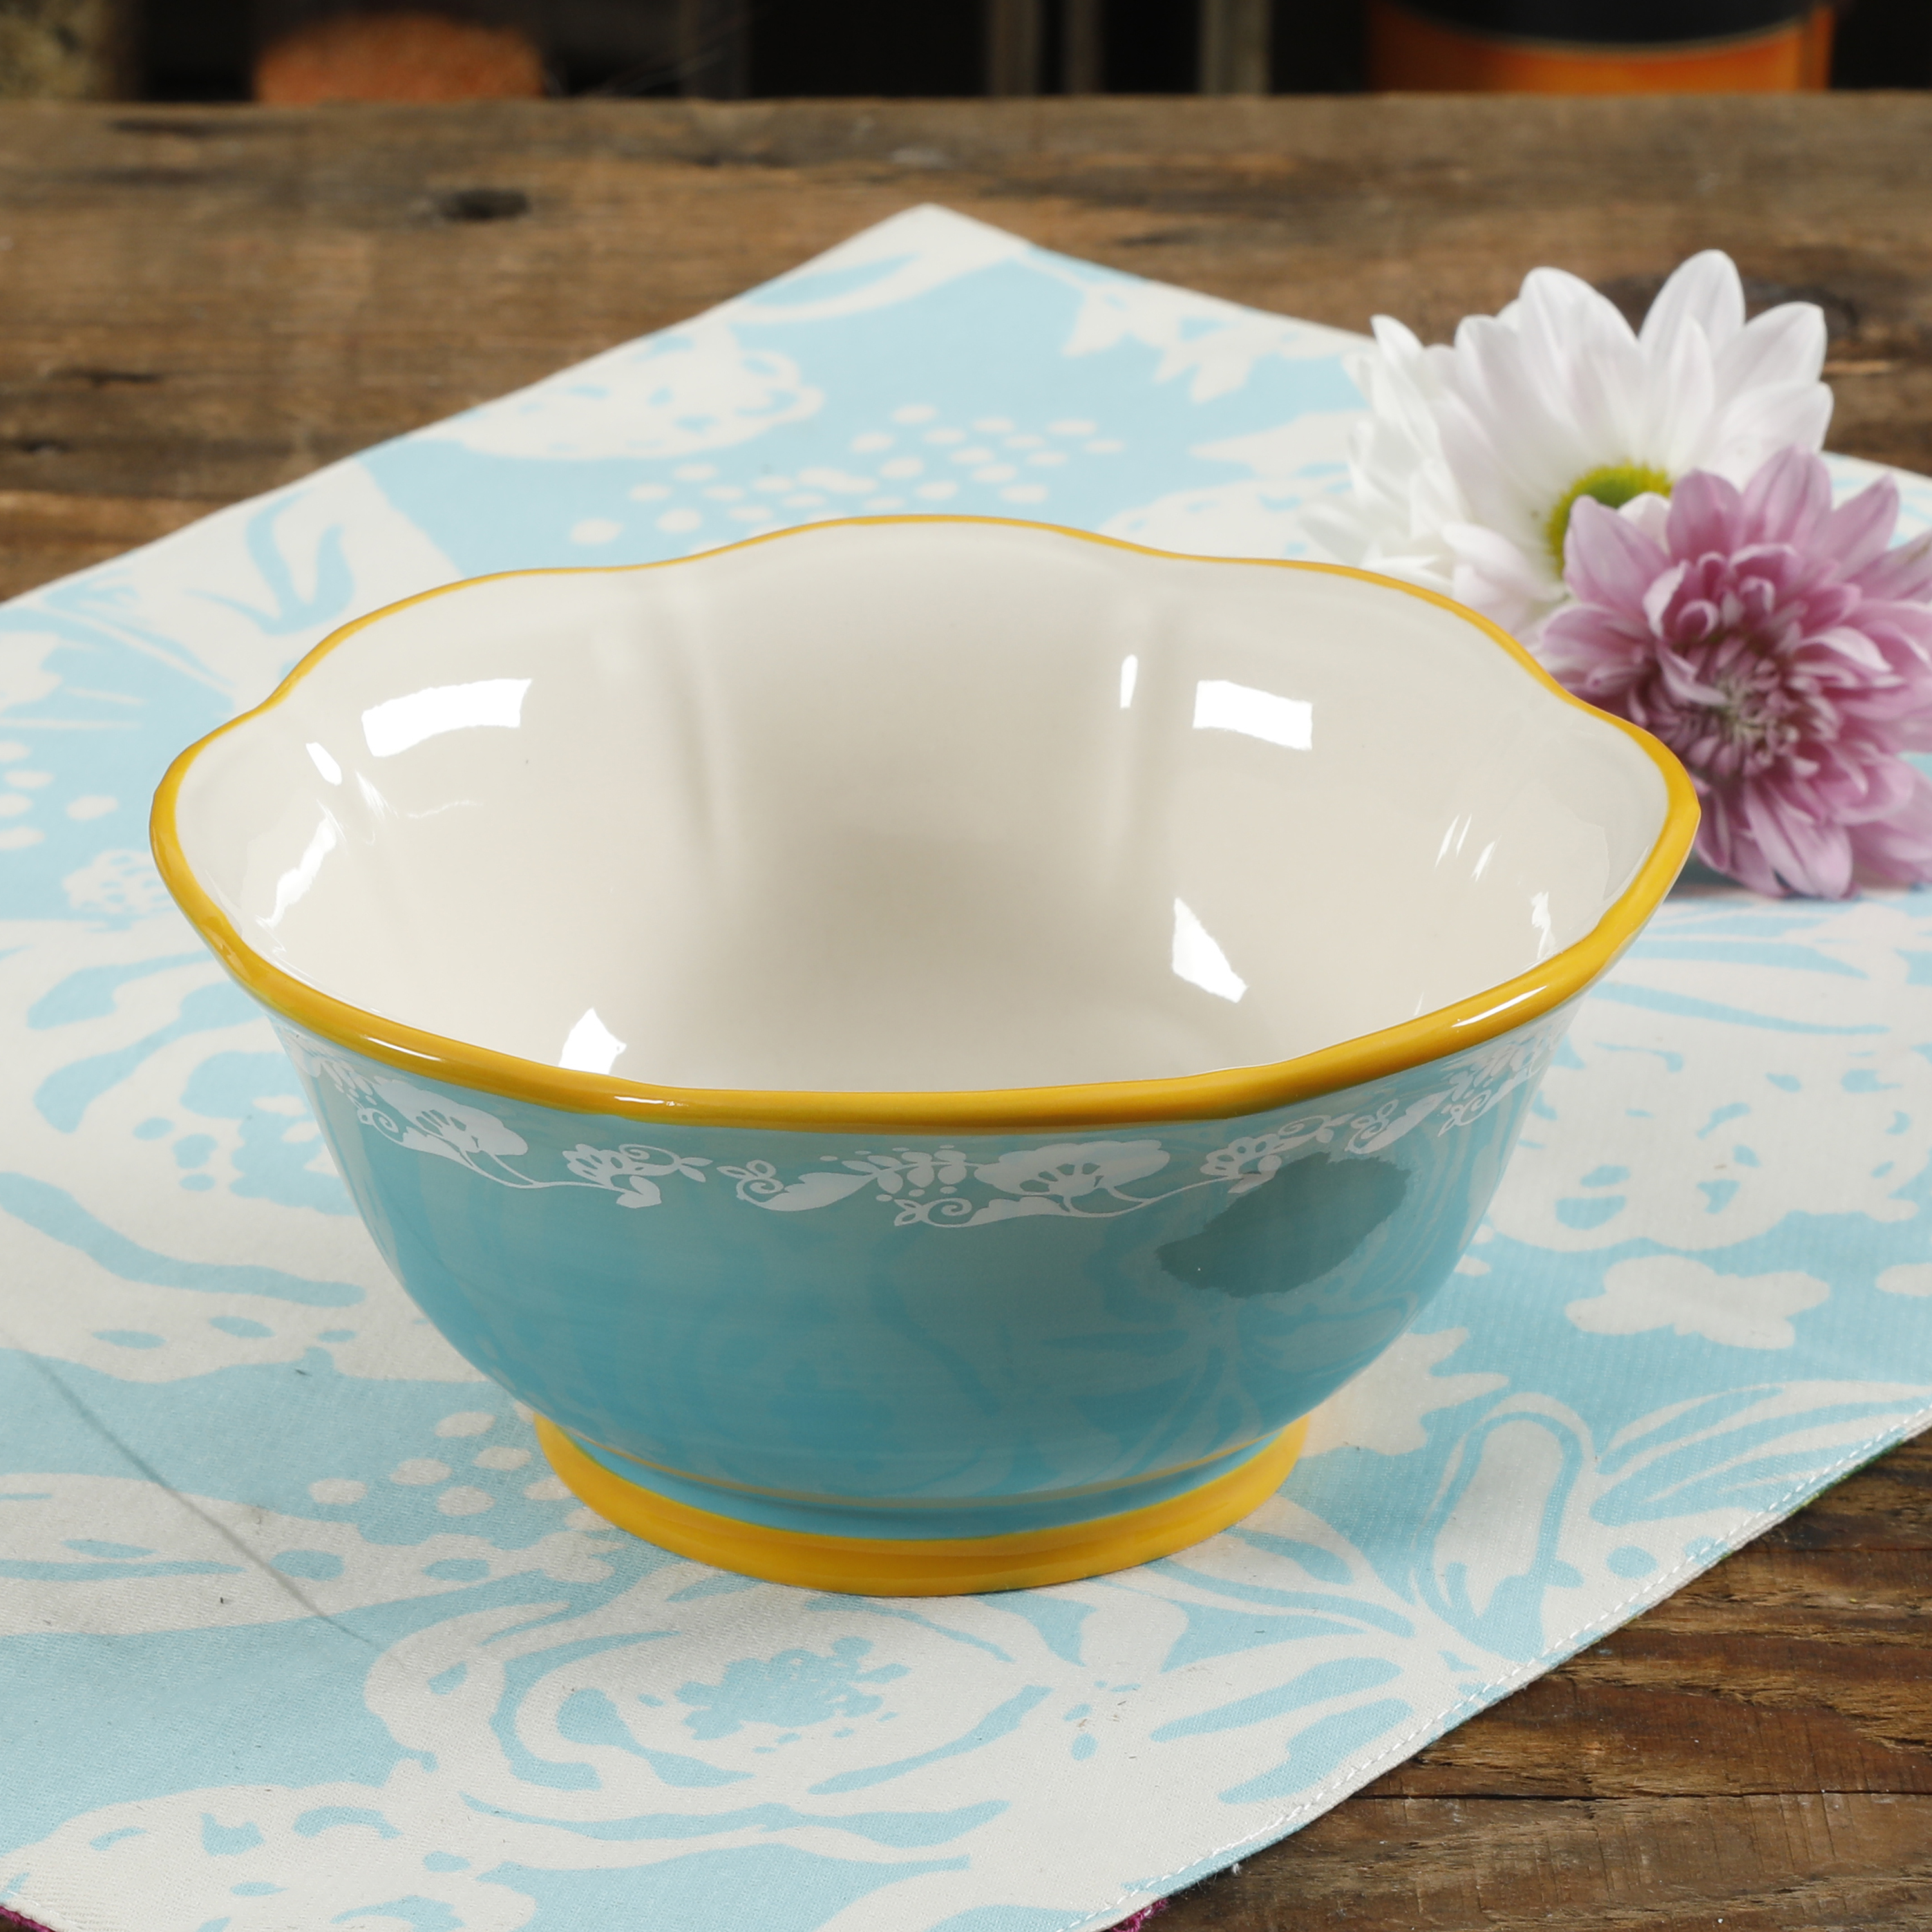 The Pioneer Woman Spring Bouquet 6.75-Inch Bowl